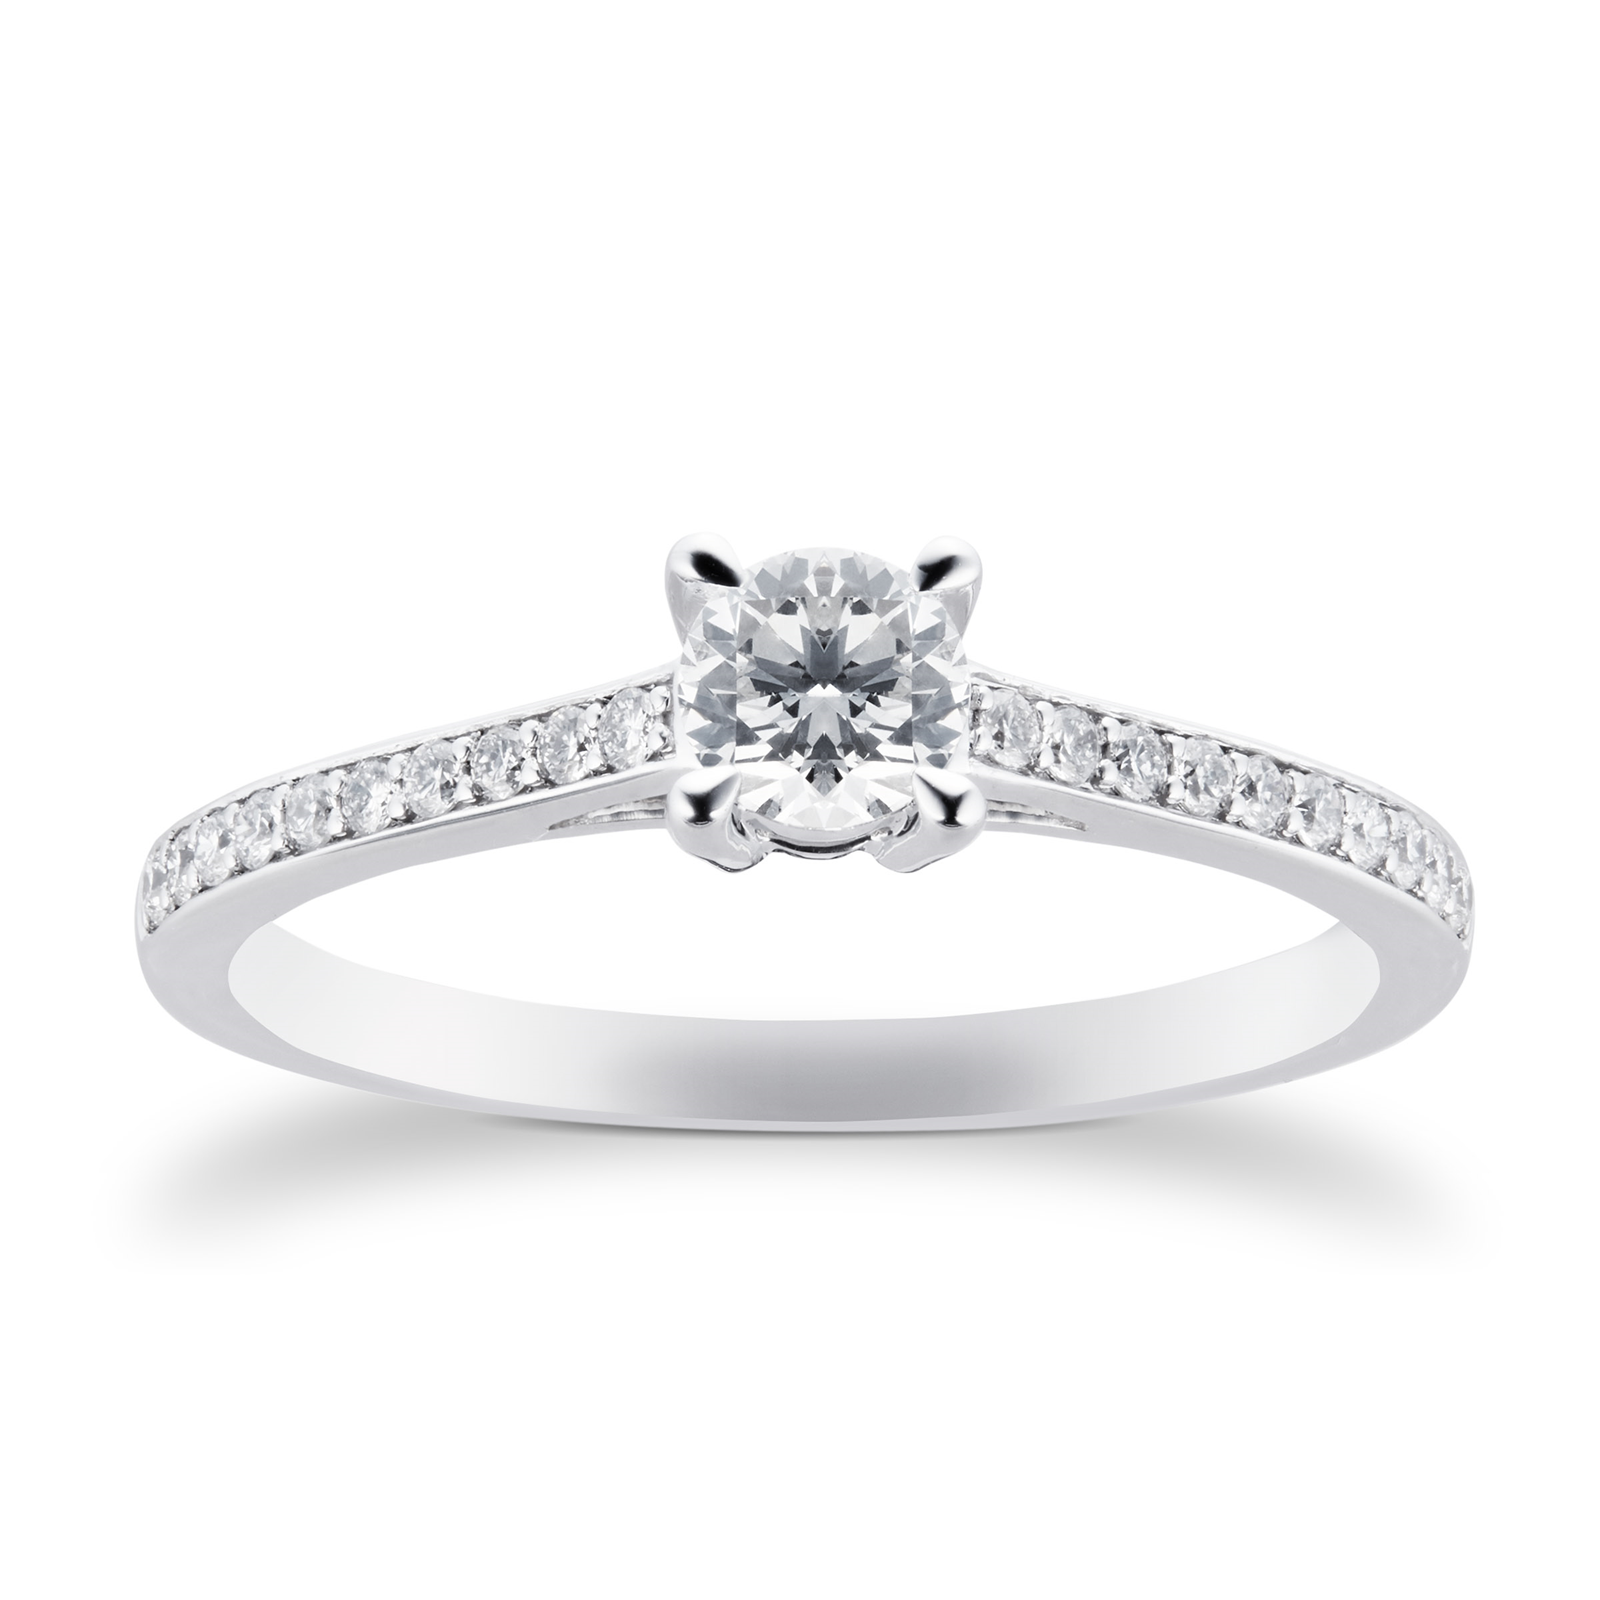 18ct White Gold Brilliant Cut 0.45 Carat 88 Facet Diamond Ring